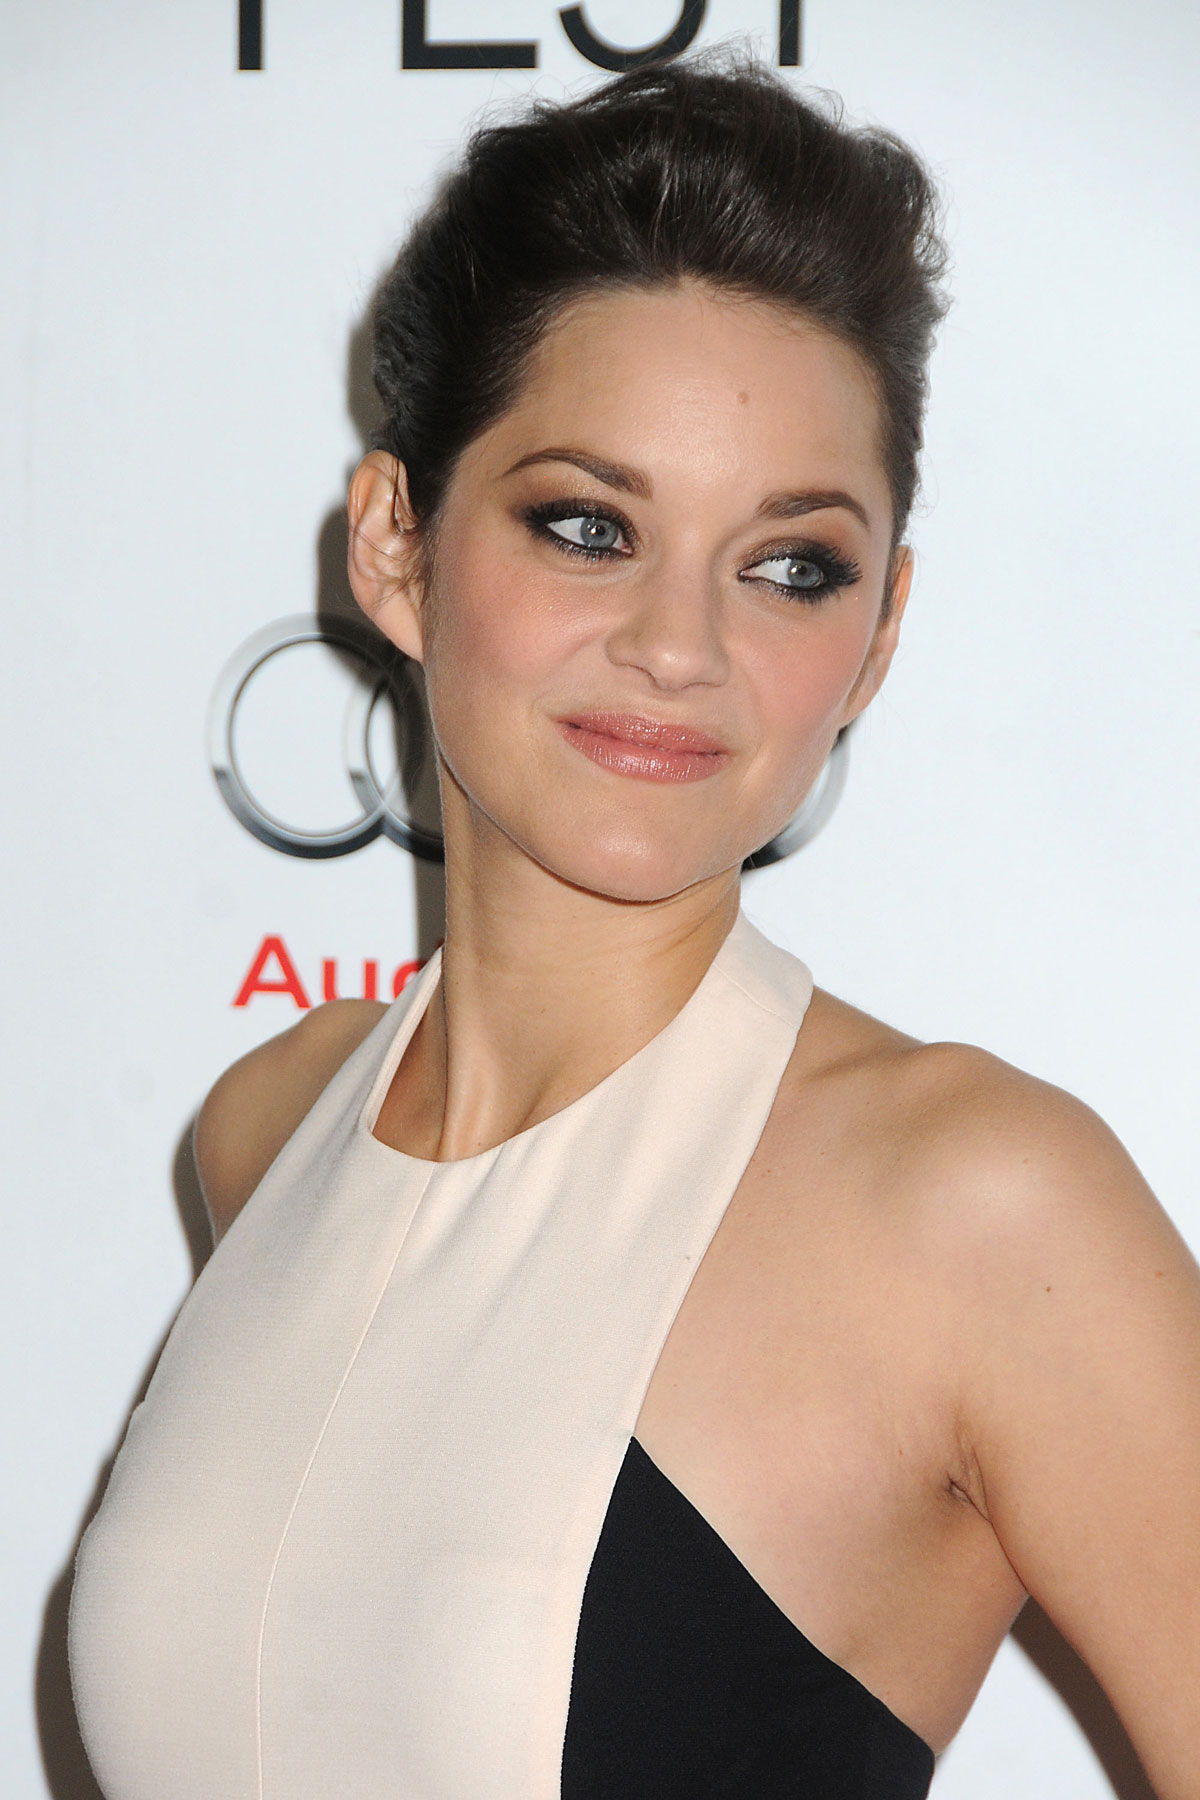 Marion Cotillard Celebrity Biography, Photos, Videos, Movies ...